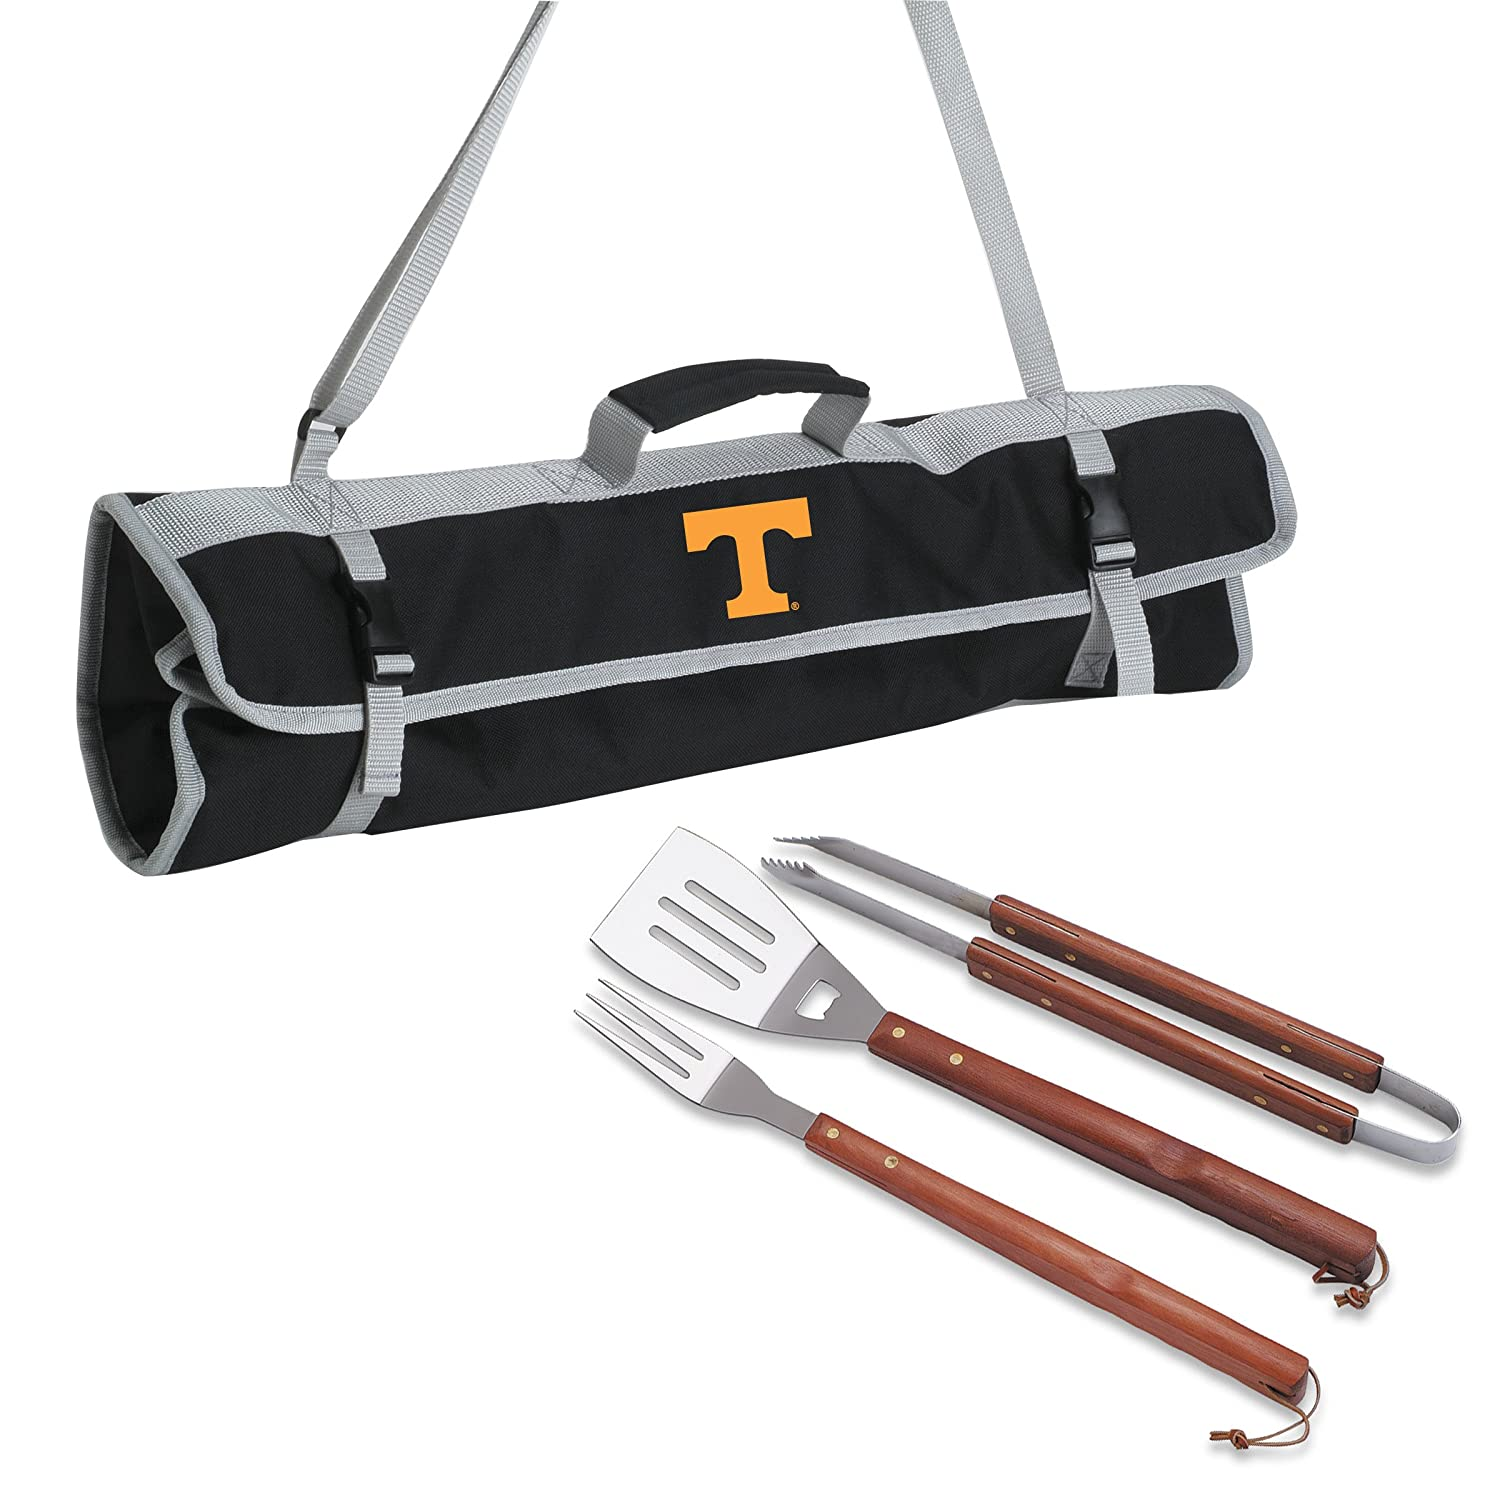 (tennessee) - Picnic Time 3-Piece BBQ Tote With Printed Collegiate Football Team Logo B0018JLGIW